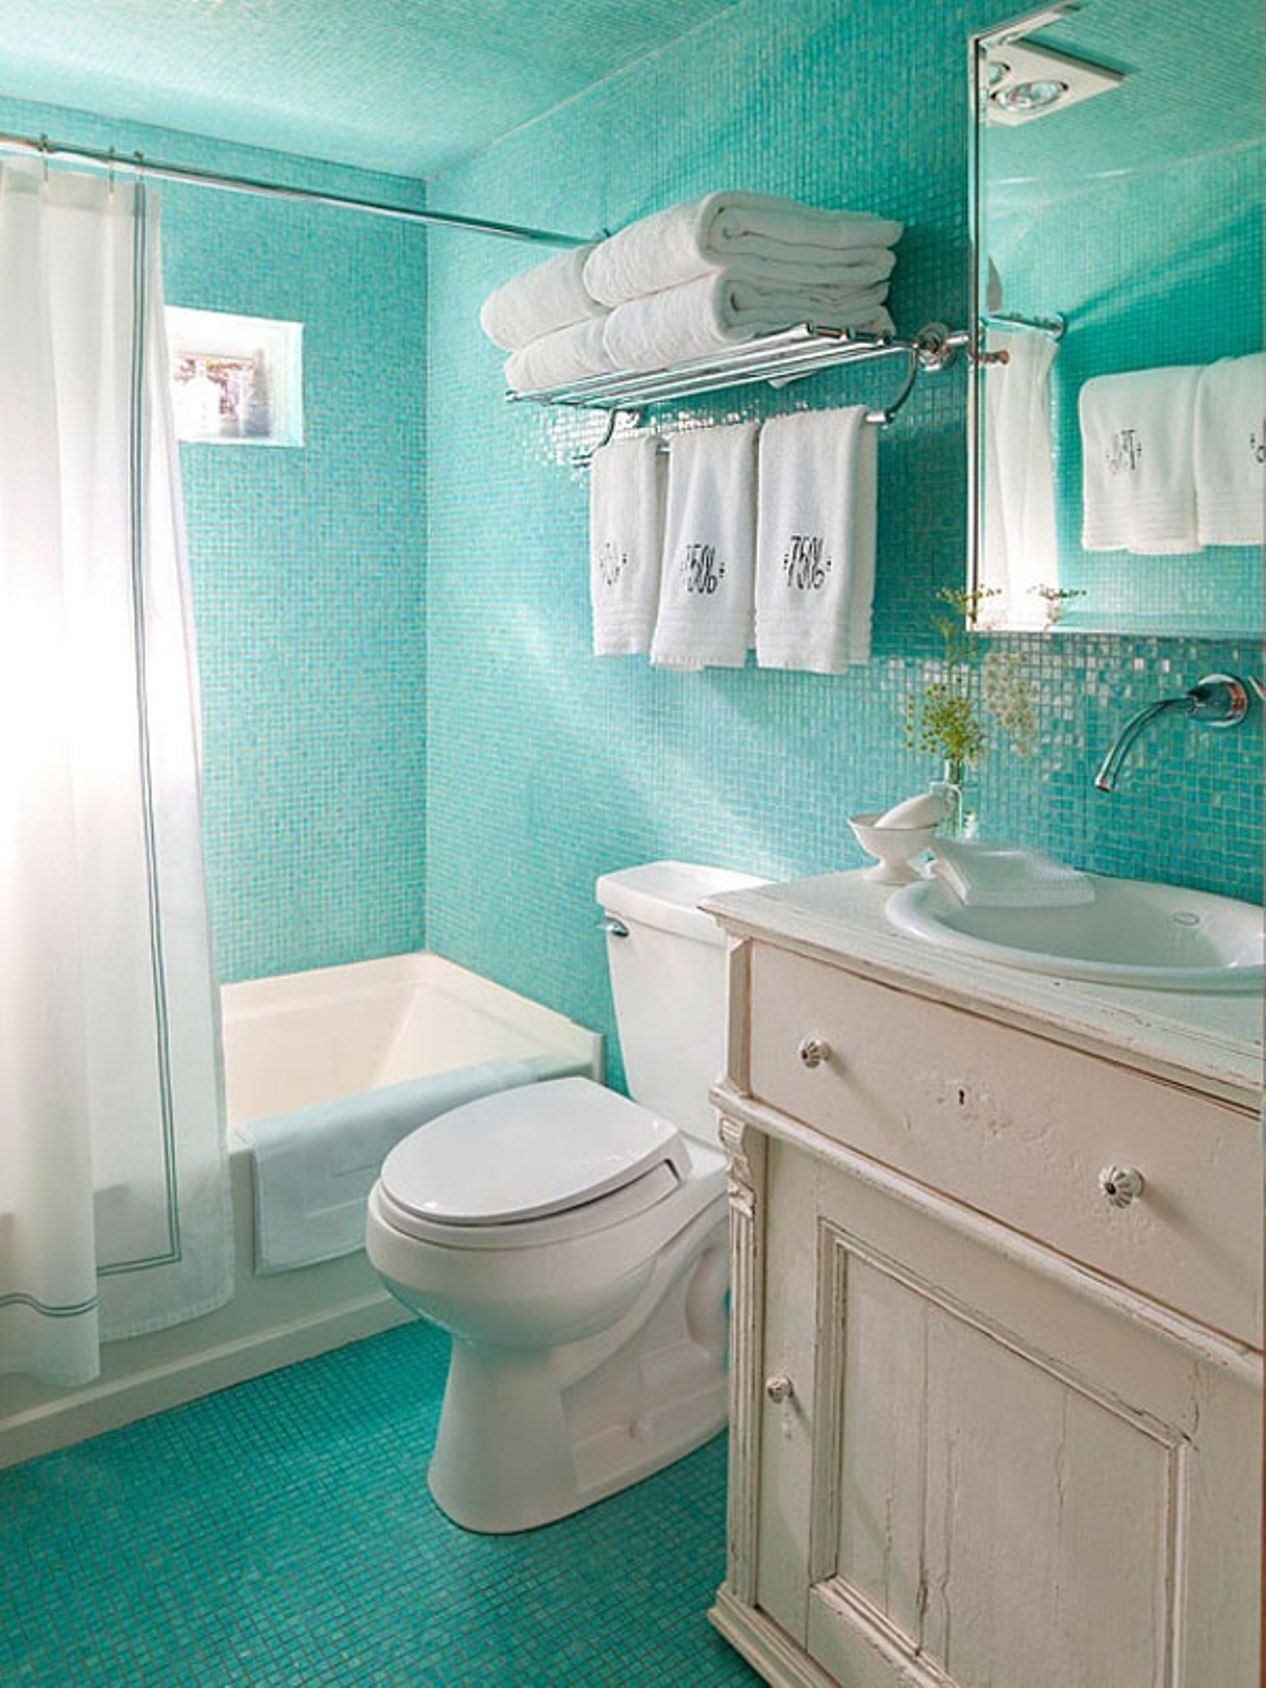 Tiffany blue bathroom designs - Bathroom Ocean Blue Glass Tile With Wall Mounted Faucet And White Bath Tub Ocean Blue Glass